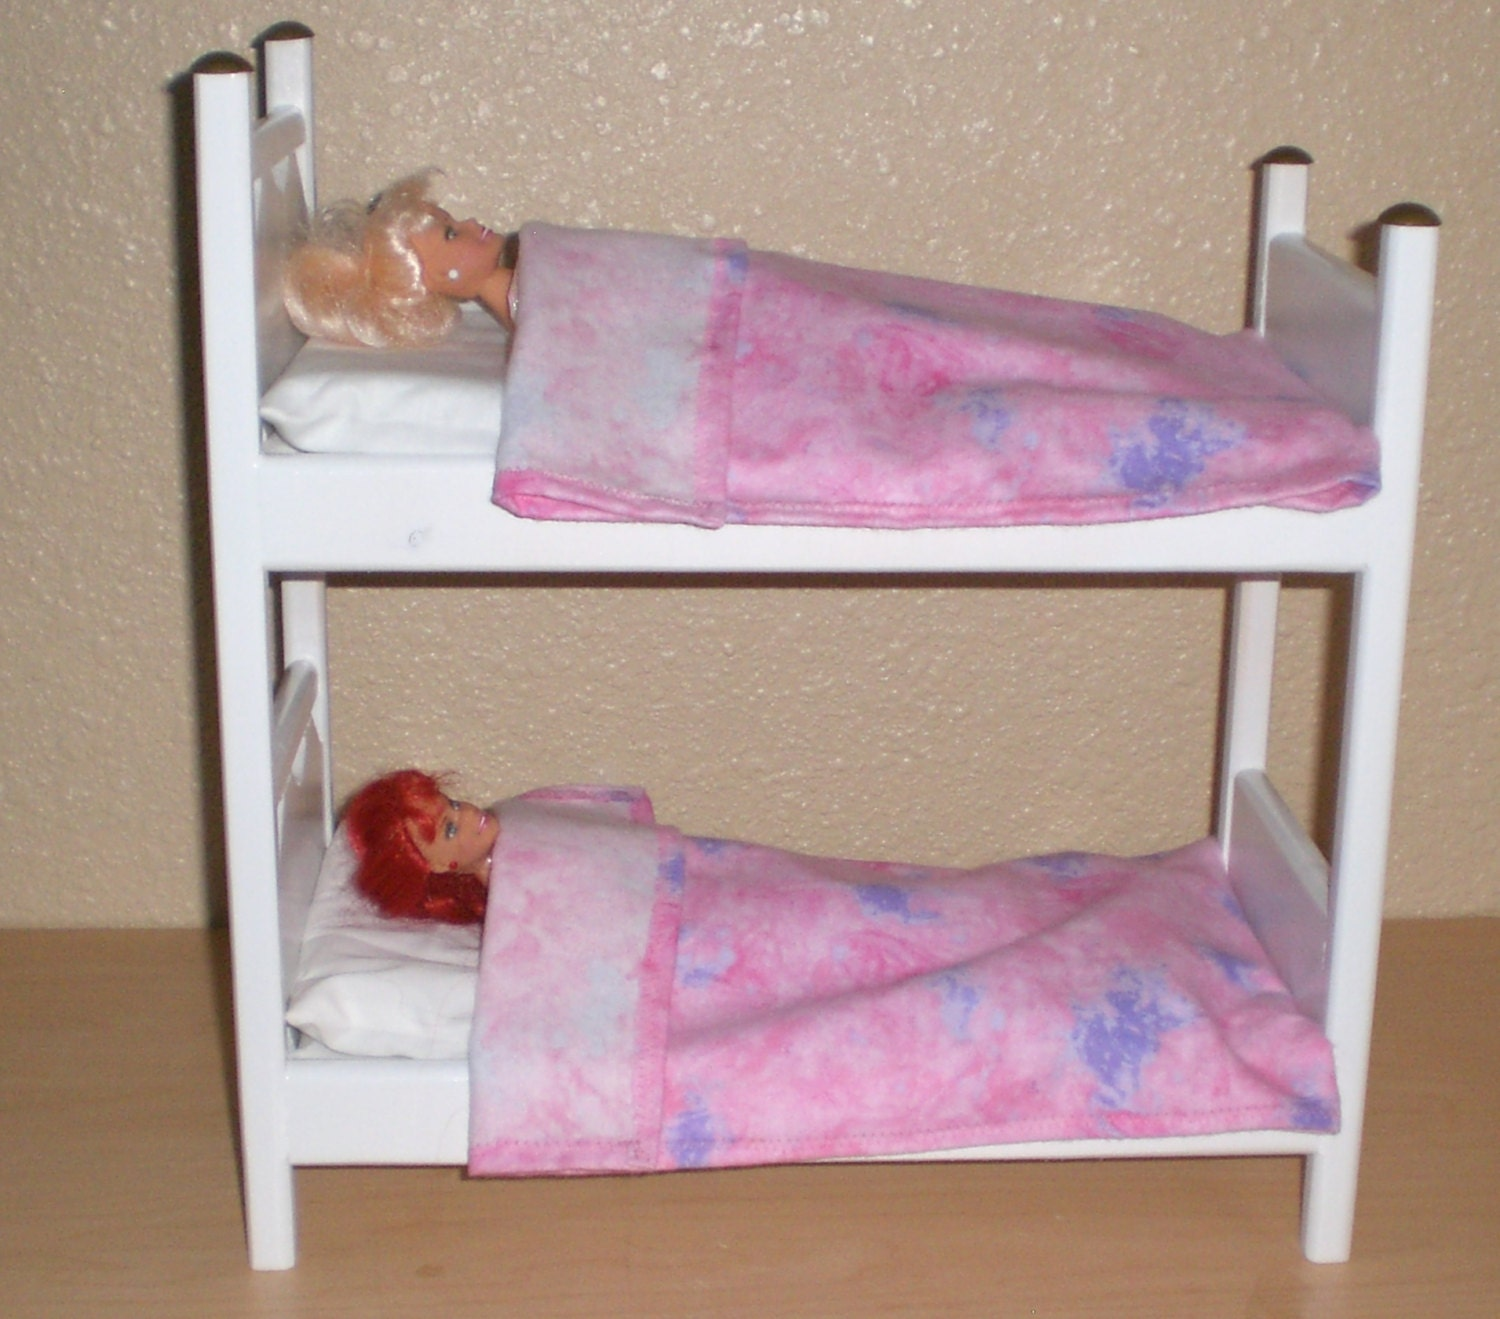 White Bunk Bed for Barbie size doll by Judy Illi Crafts